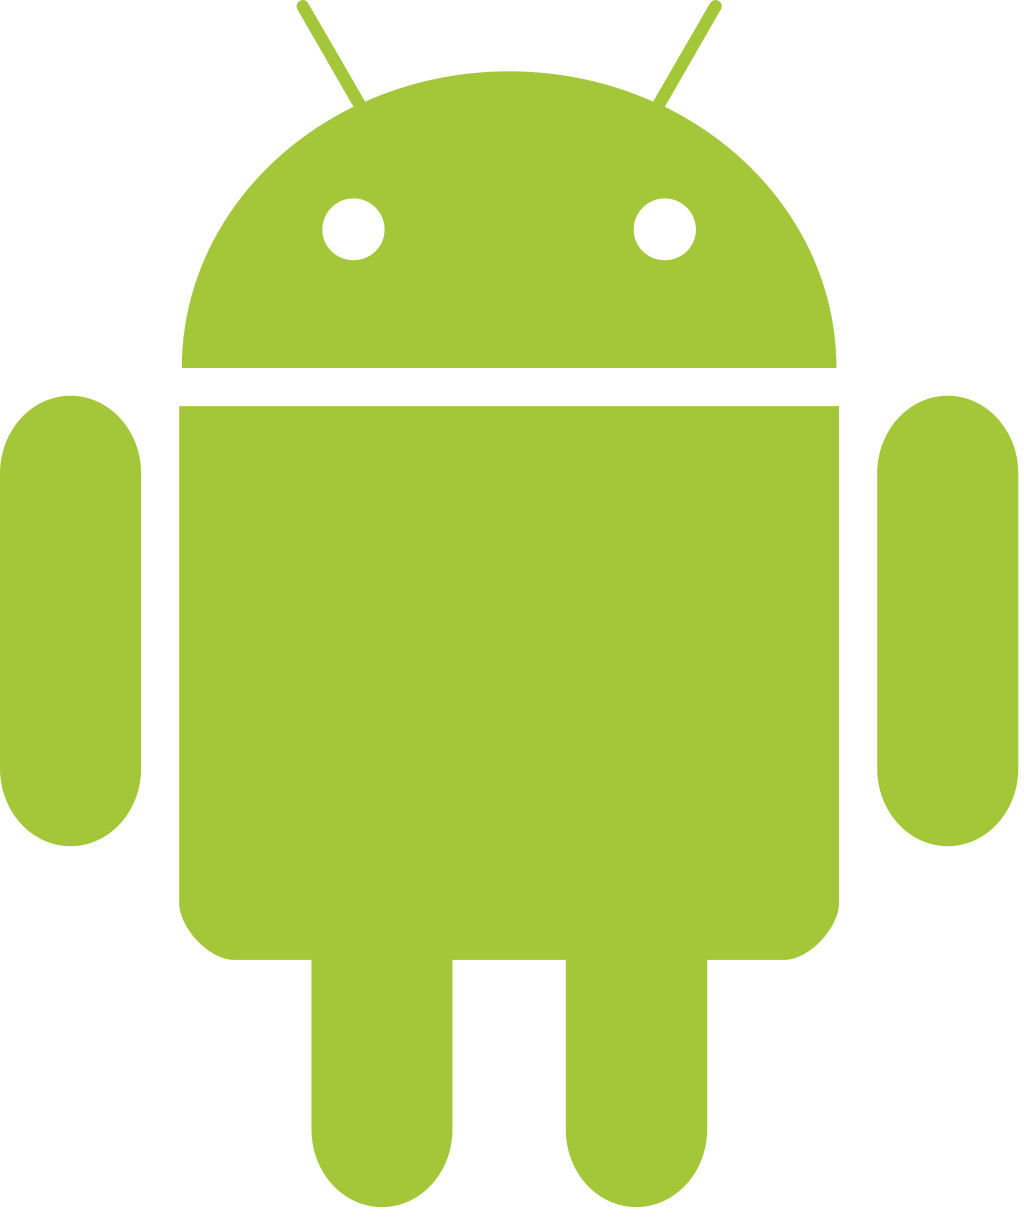 android logo PNG17